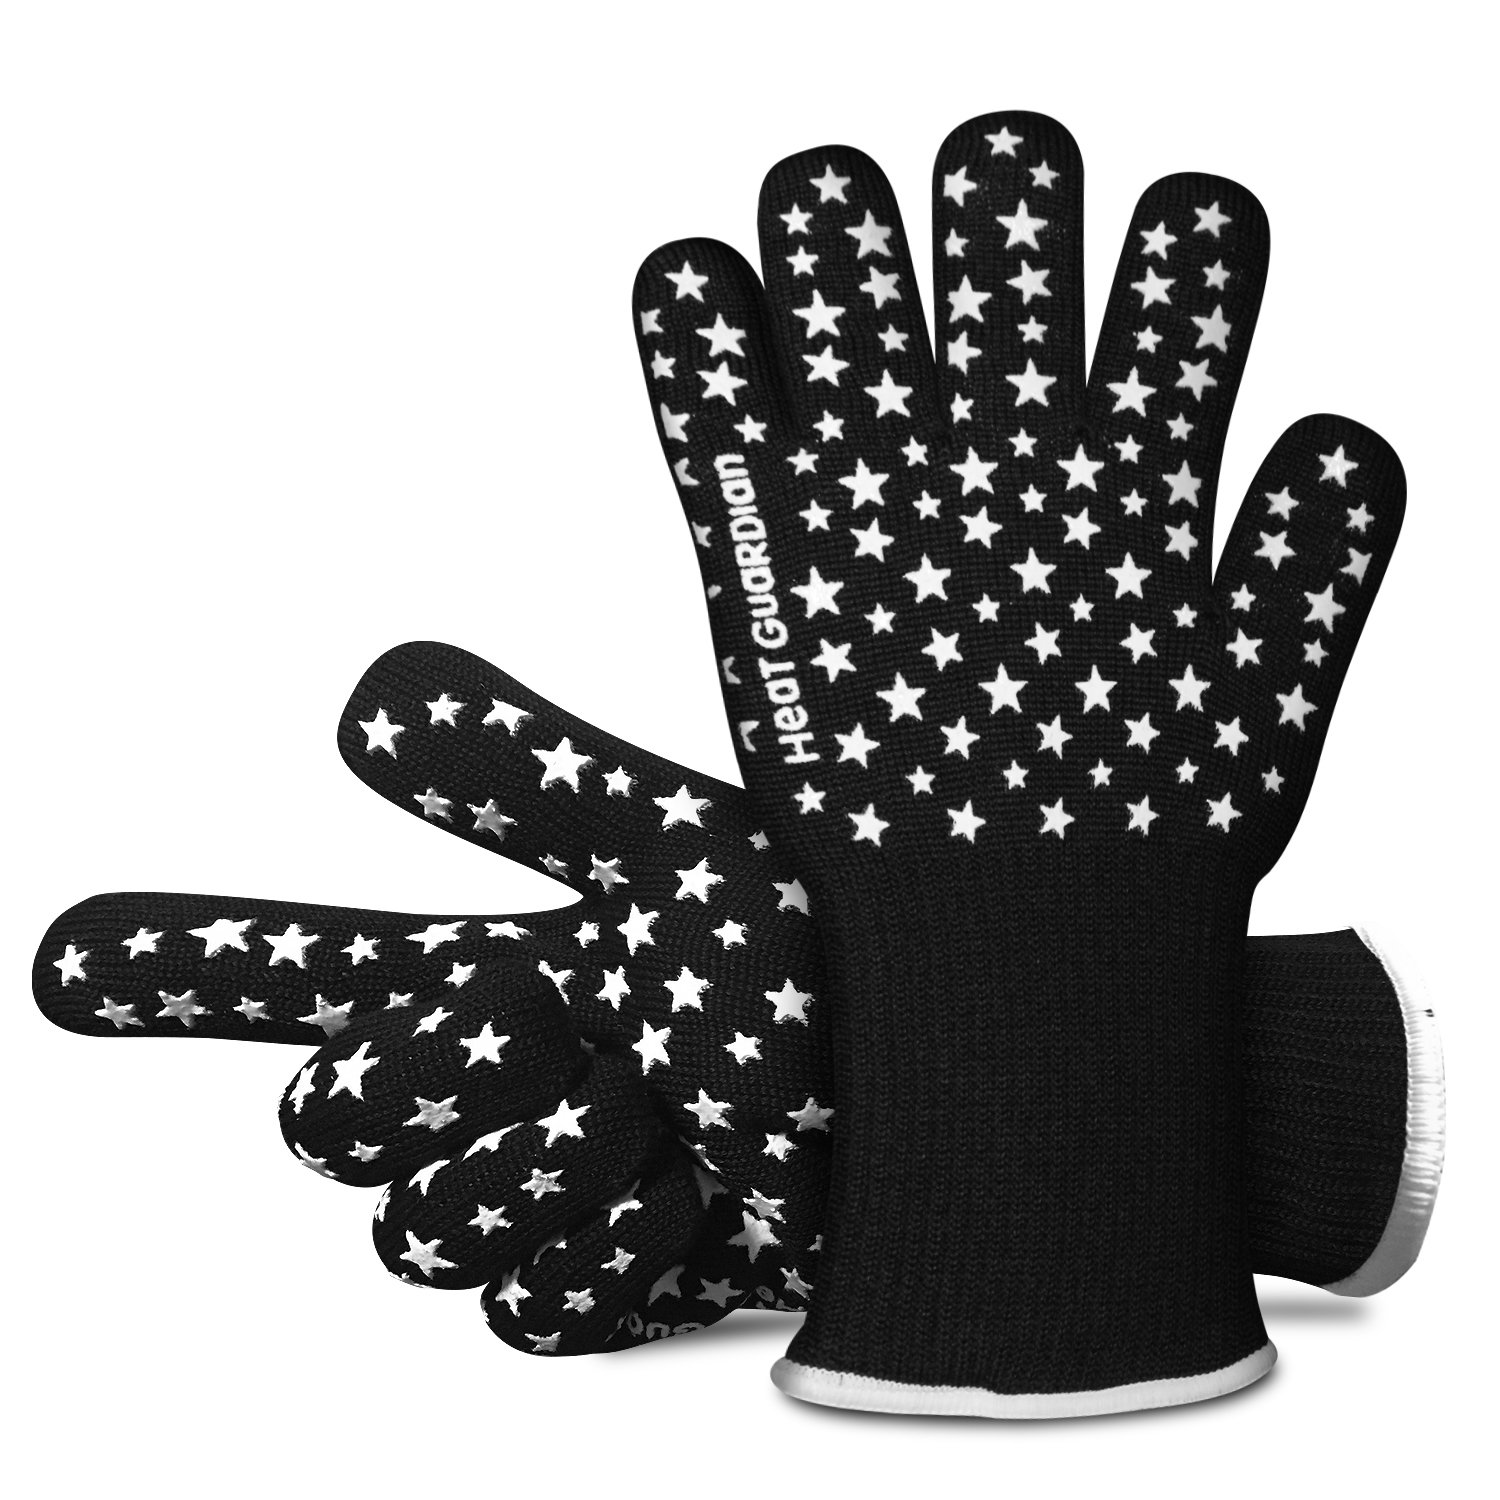 Heat Guardian Heat Resistant Gloves - Protective Gloves Withstand Heat Up To 932℉ - Use As Oven Mitts, Pot Holders, Heat Resistant Gloves for Grilling COMINHKPR125203